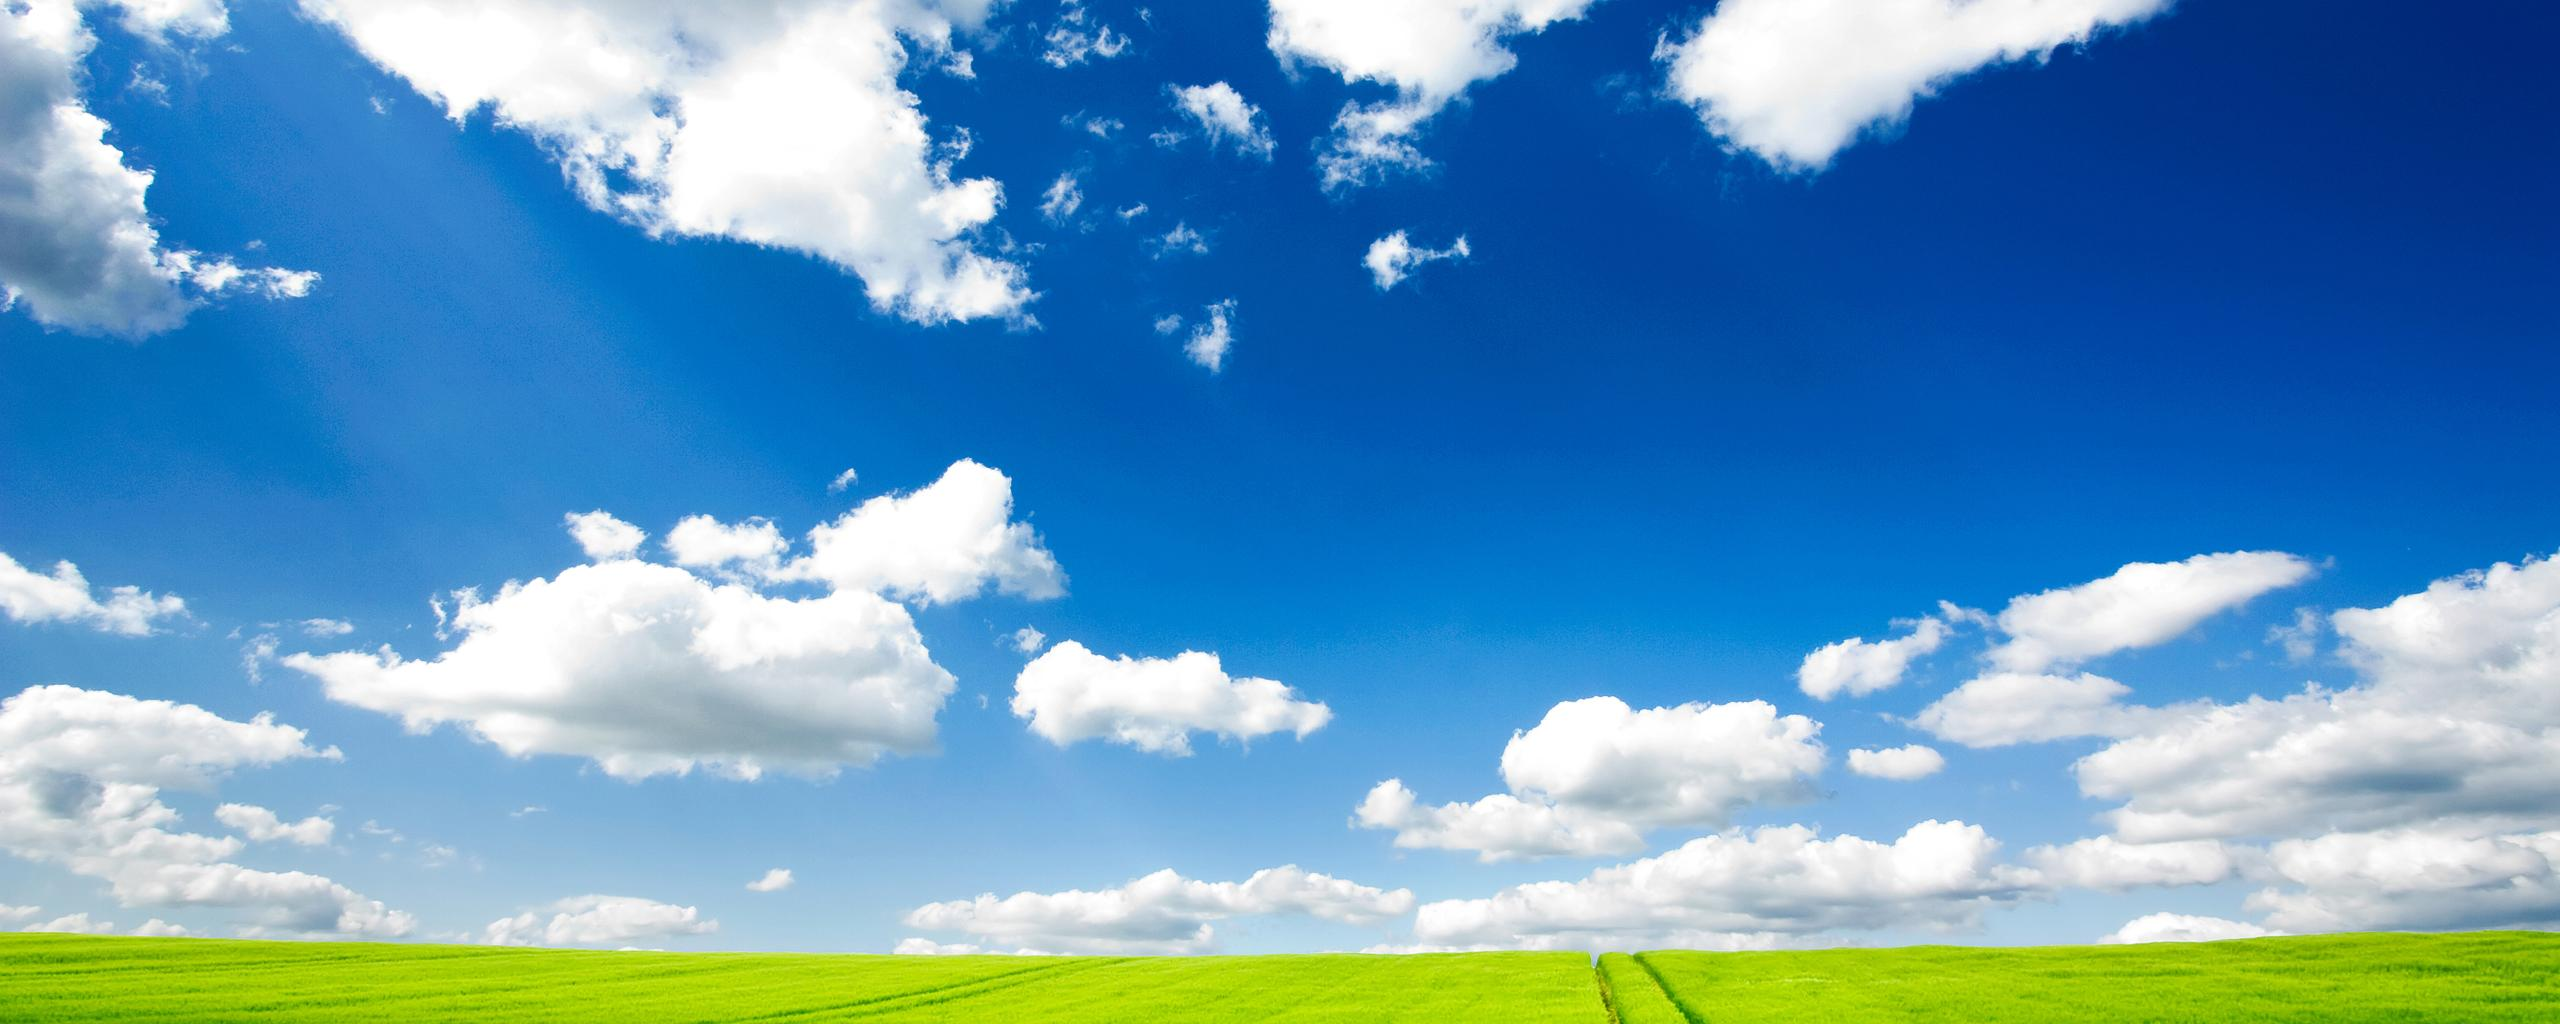 Blue Sky Wallpapers 2560x1024